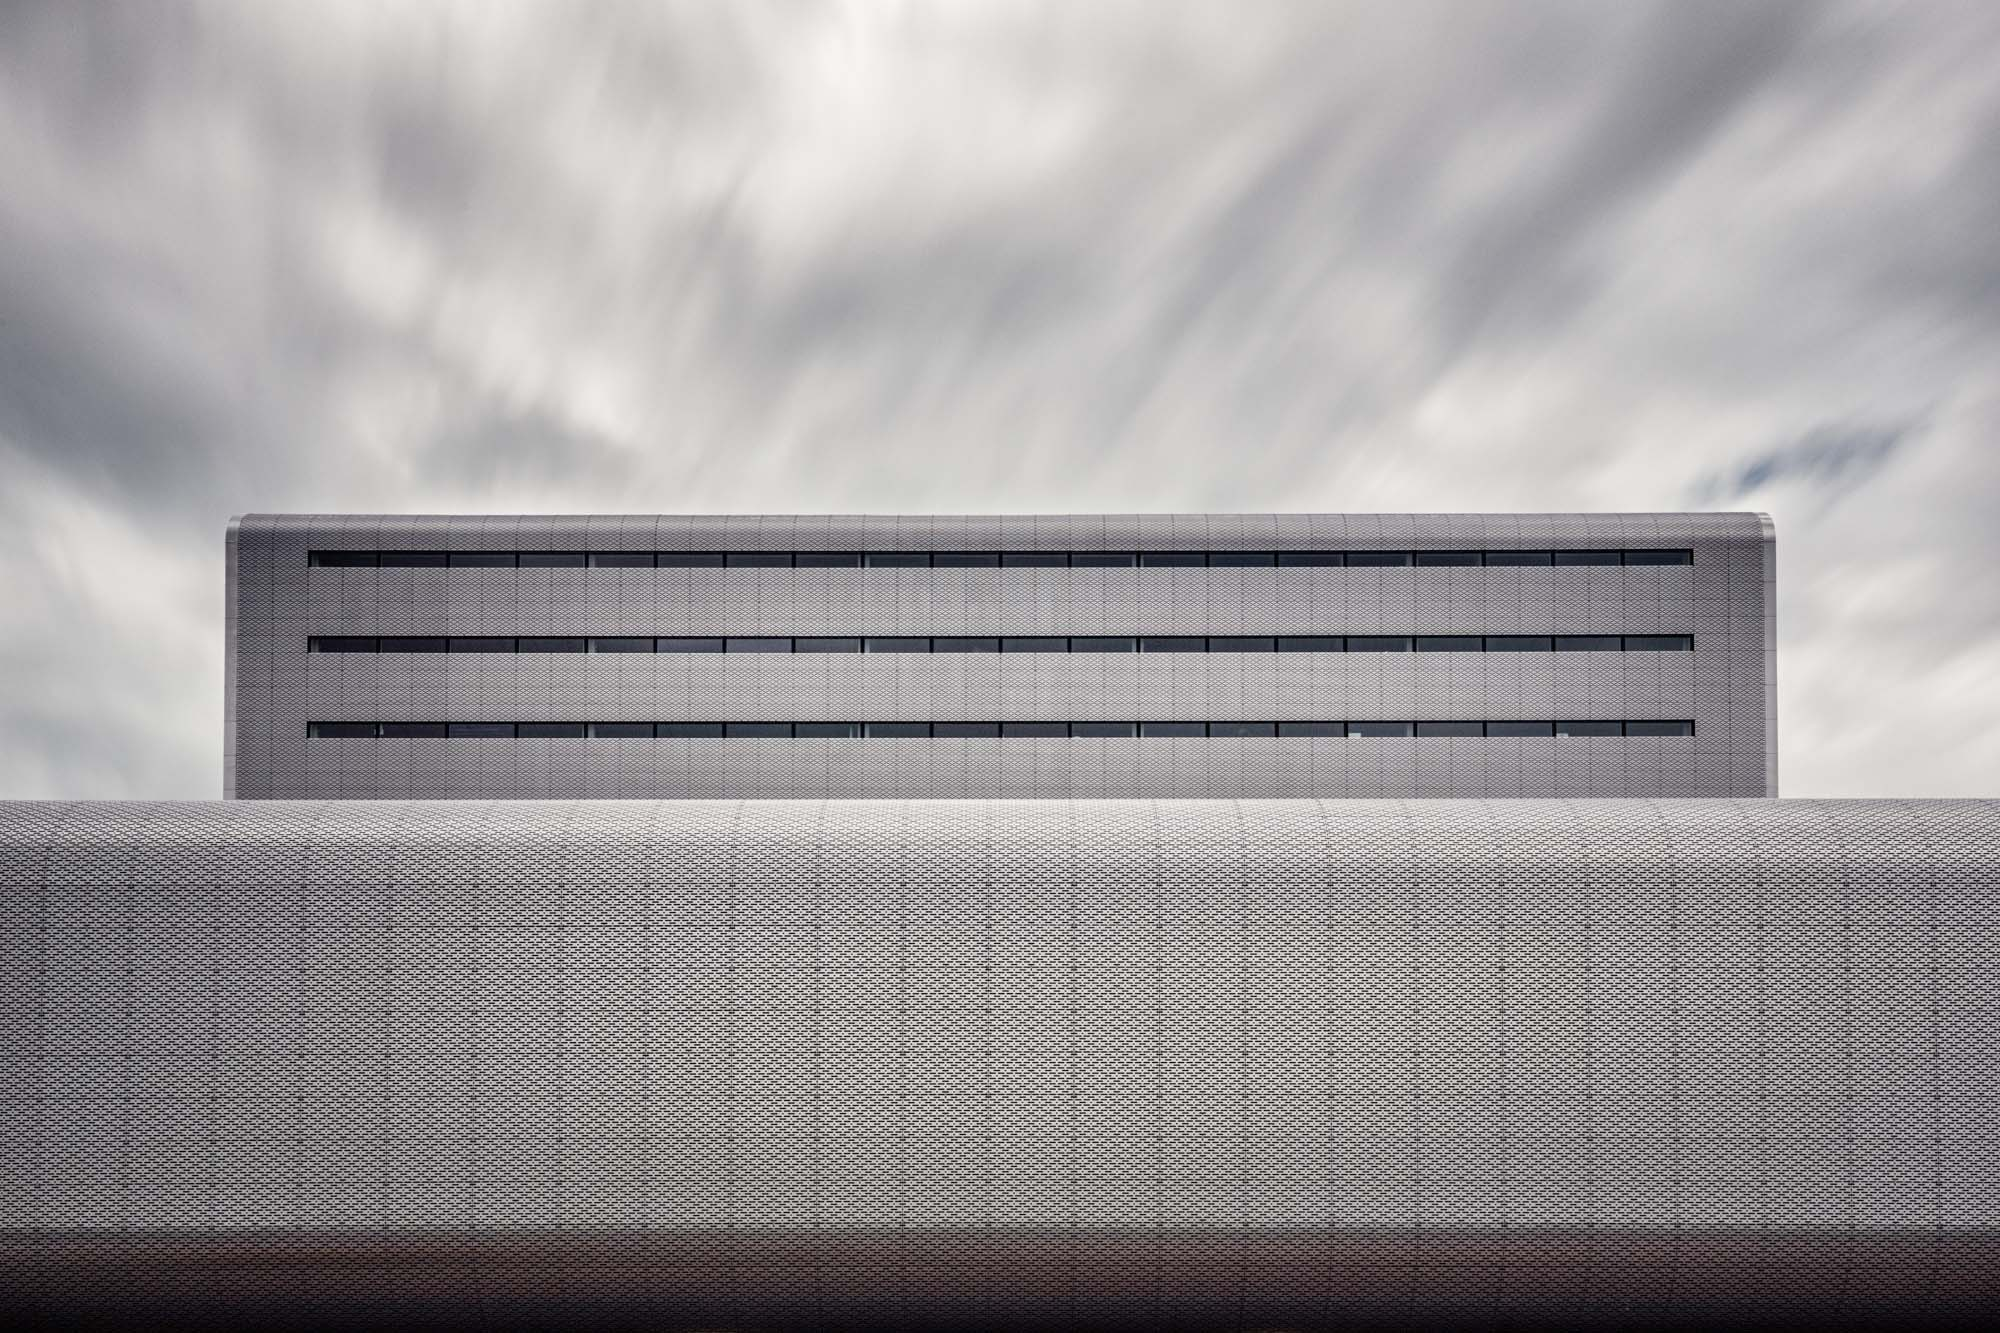 long exposure architecture photograph of stark minimalist metal building in Amsterdam